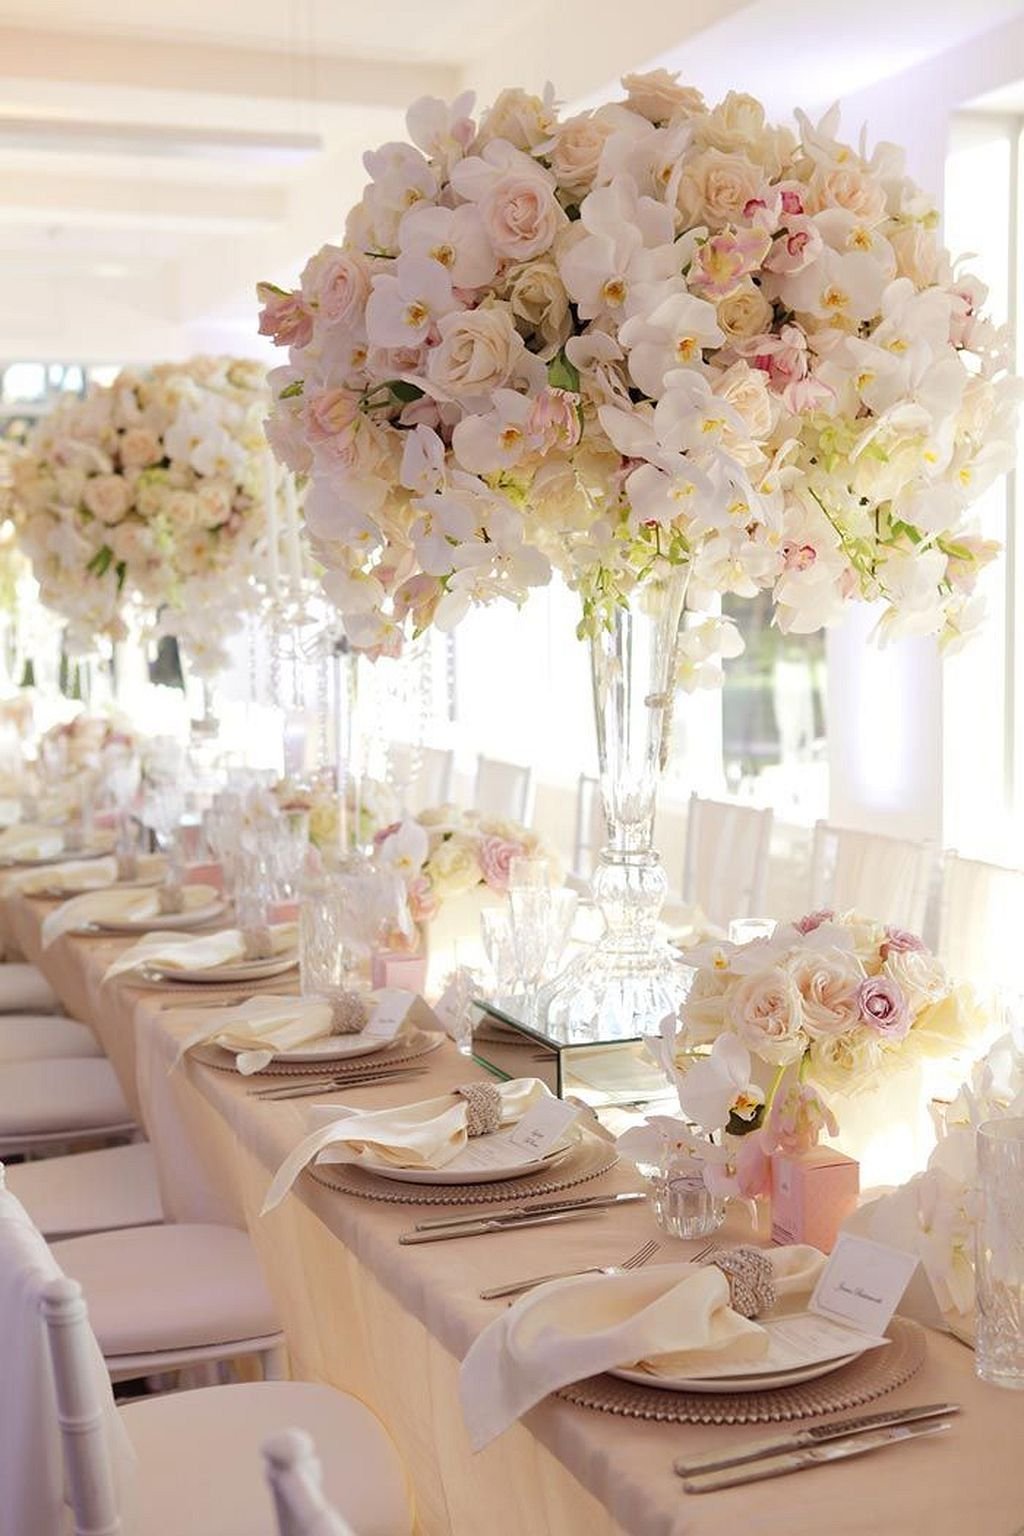 120 elegant floral wedding centerpiece ideas 101 | Floral wedding ...